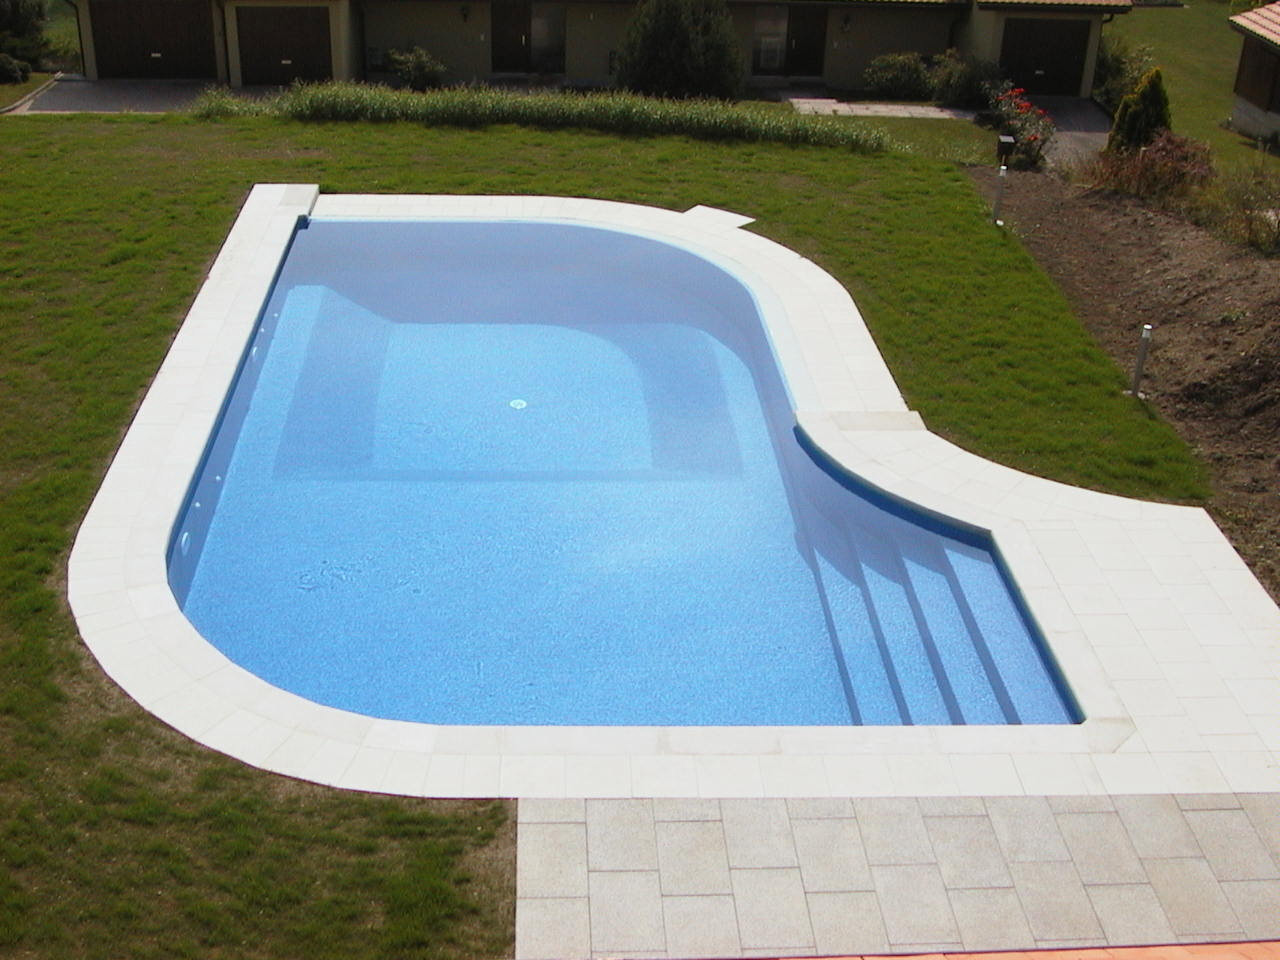 Consommation chauffage piscine hom co chauffage pompe for Consommation pompe a chaleur piscine